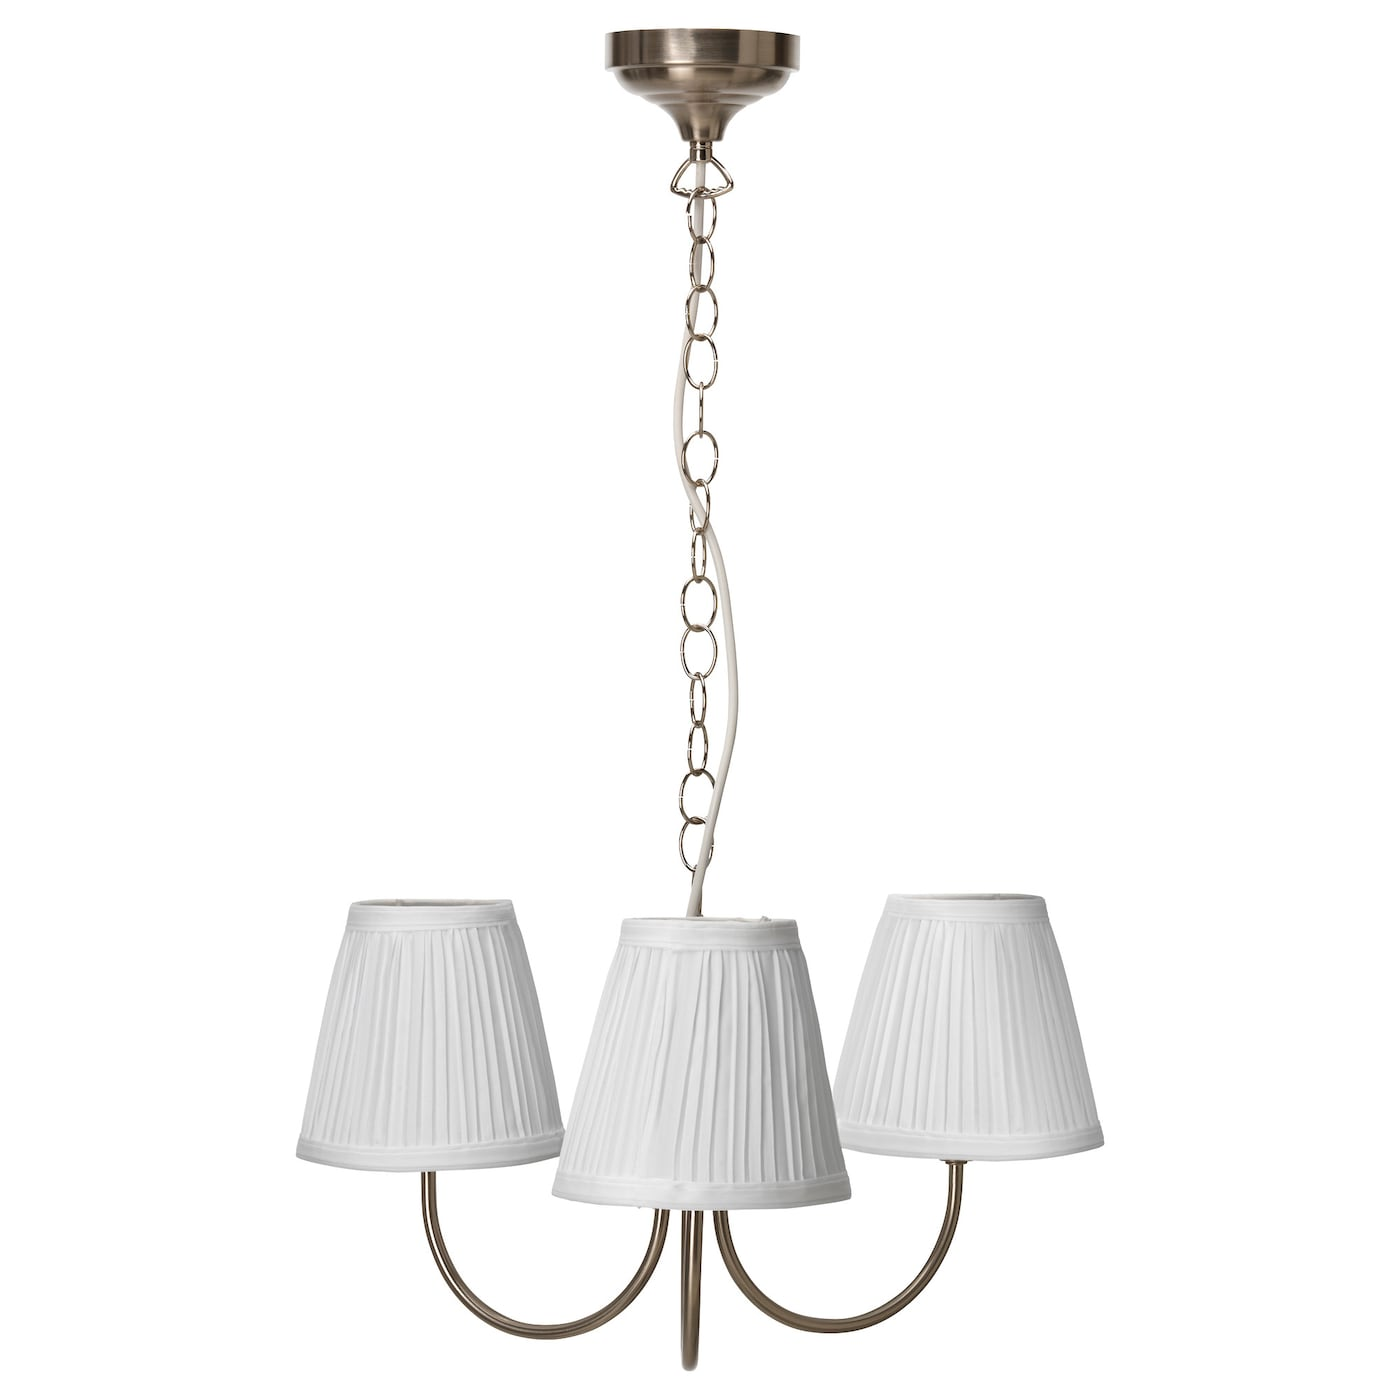 Pendant lighting pendant lamps chandeliers ikea ikea rstid pendant lamp 3 armed the textile shade provides a diffused and decorative aloadofball Images